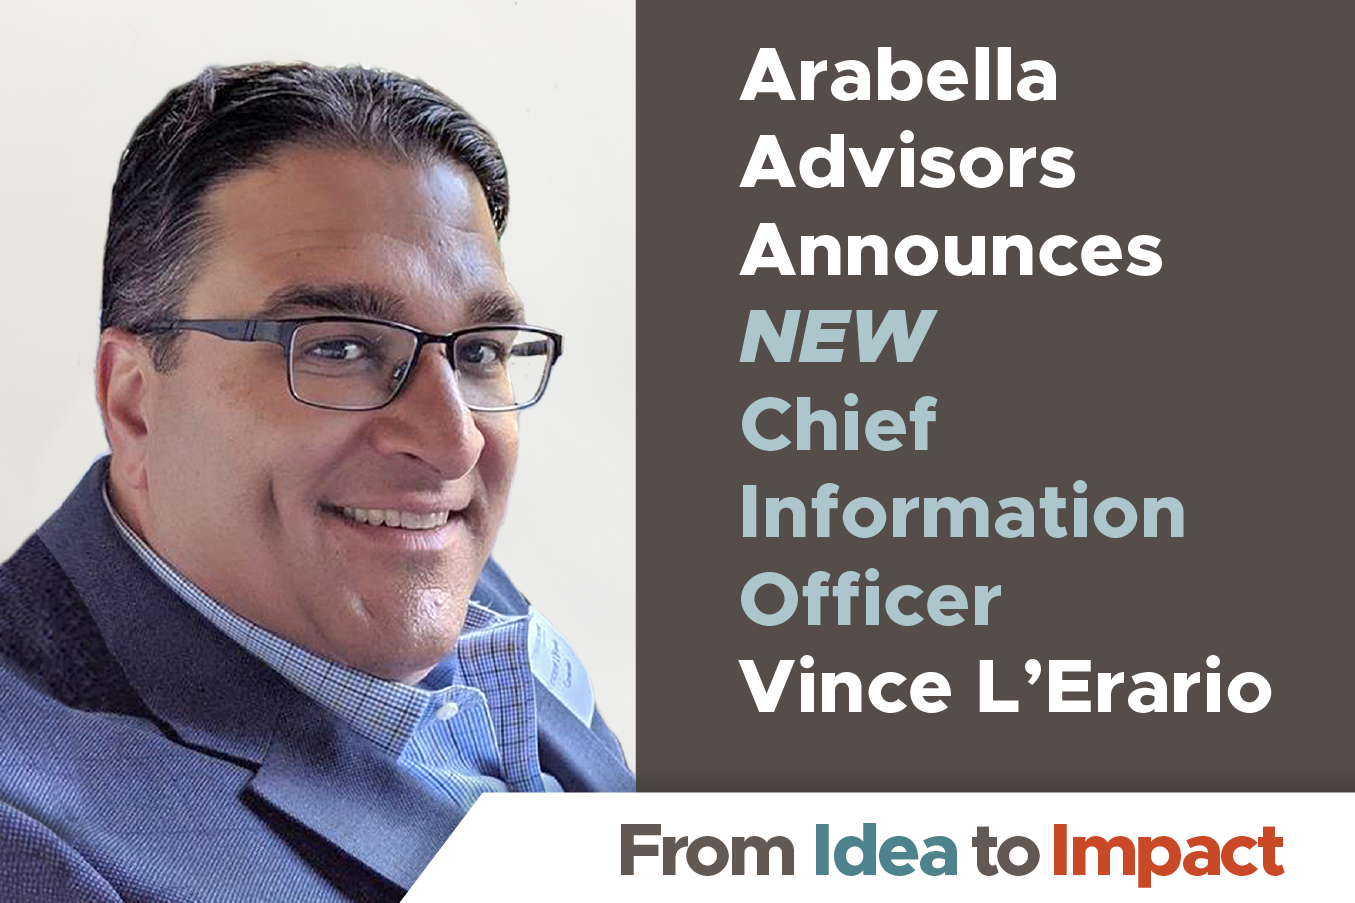 Vince L'Erario Joins Arabella Advisors as New Chief Information Officer